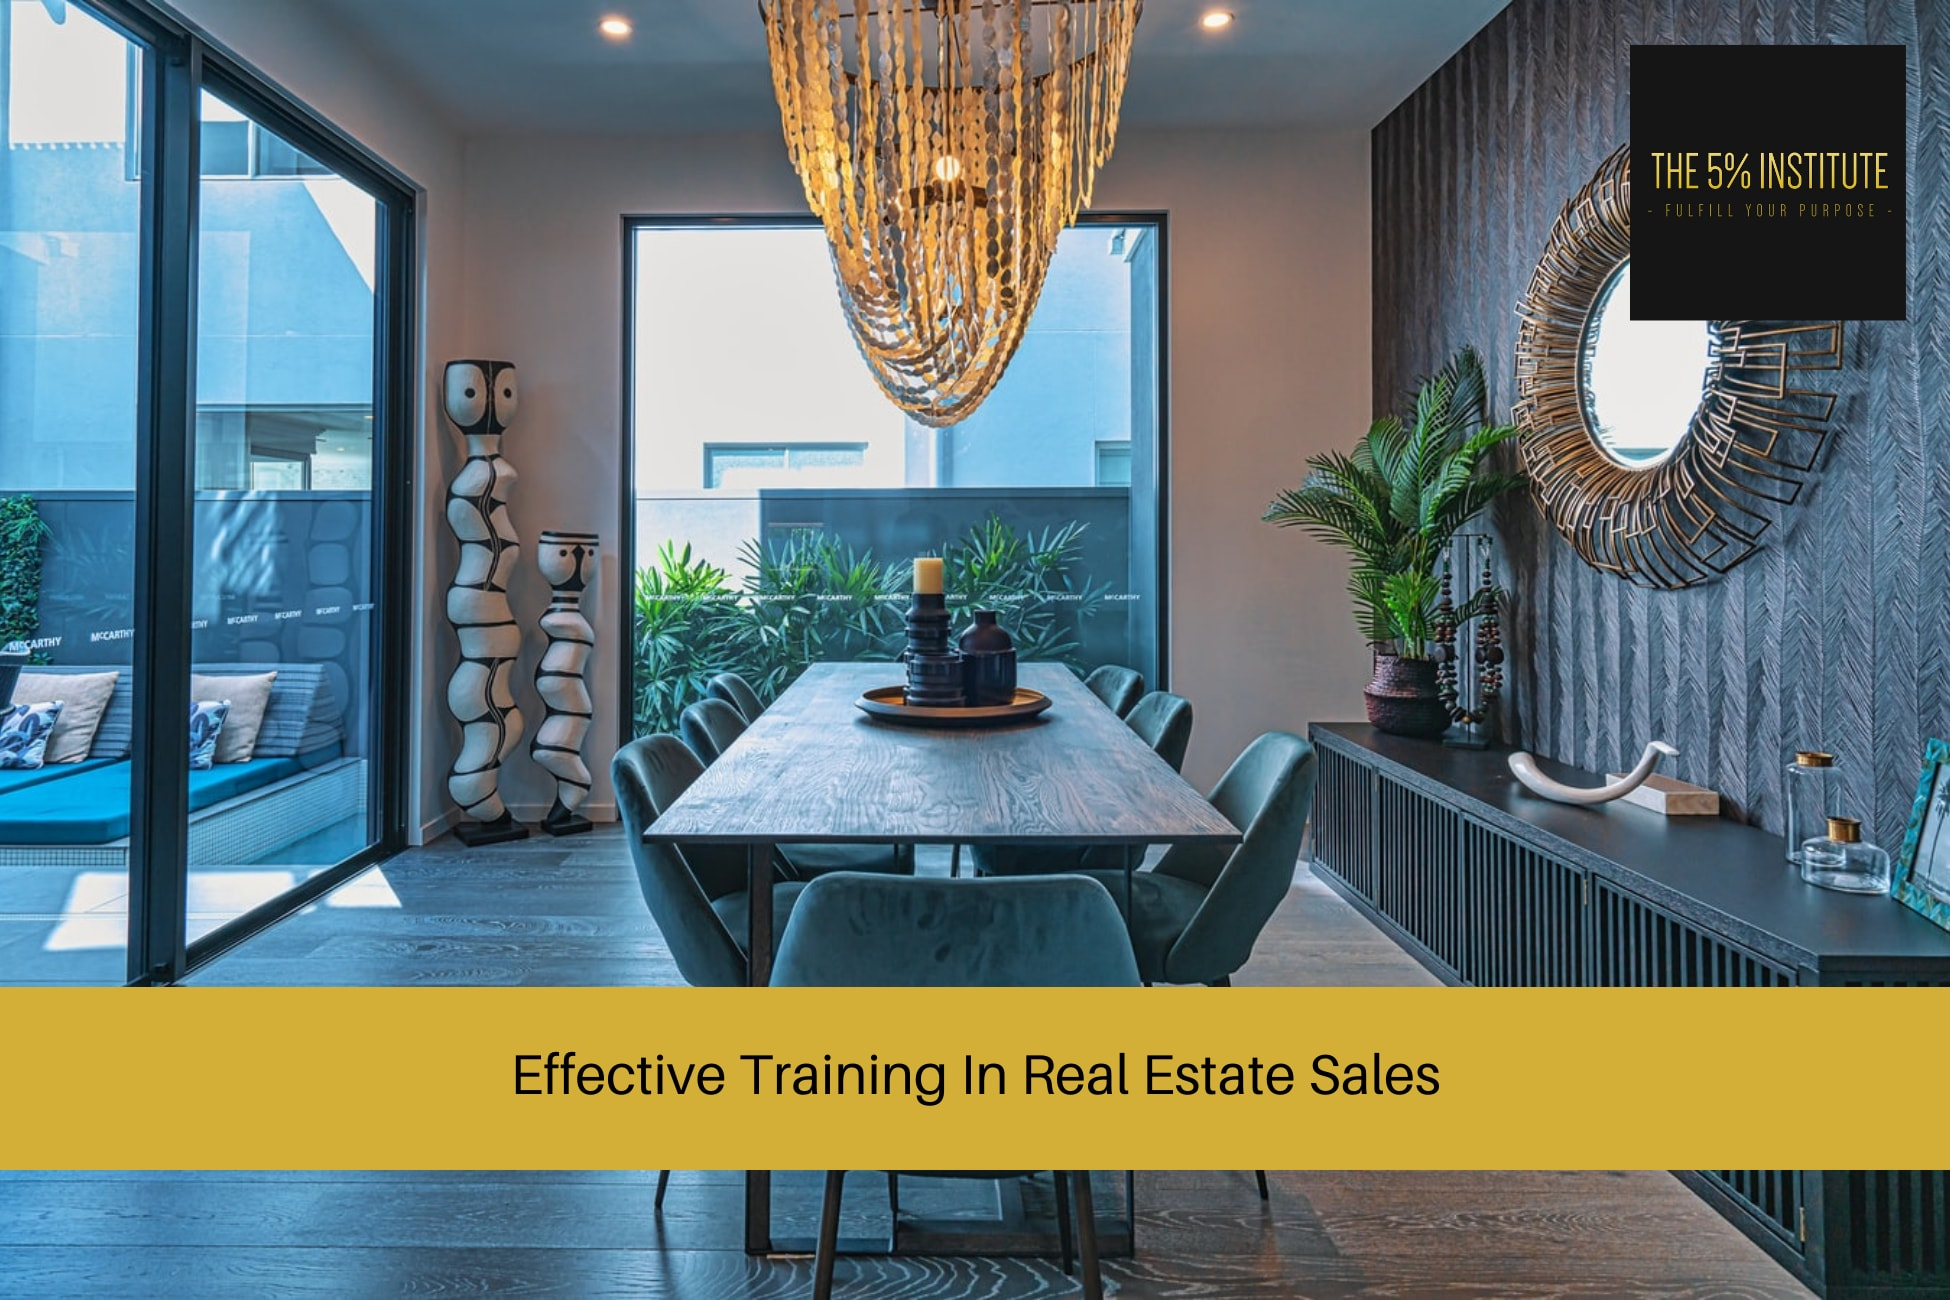 training in real estate sales